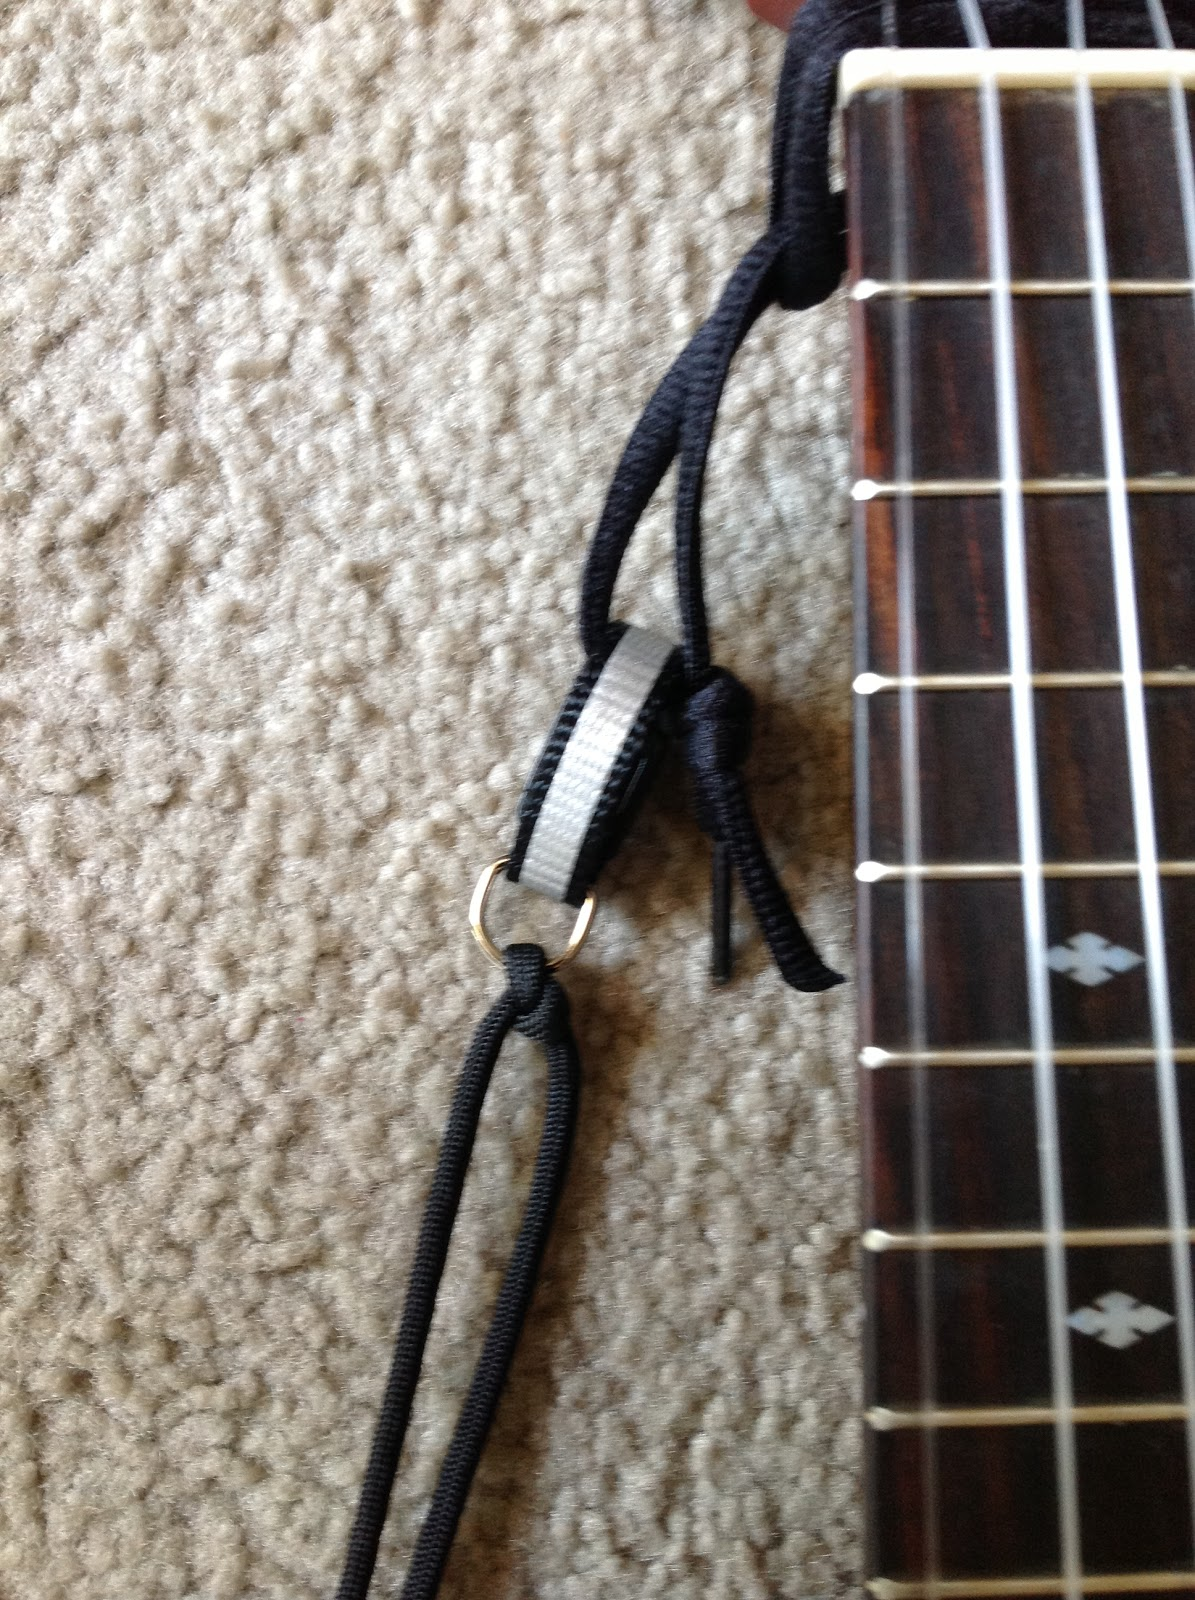 homemade ukelele strap close-up